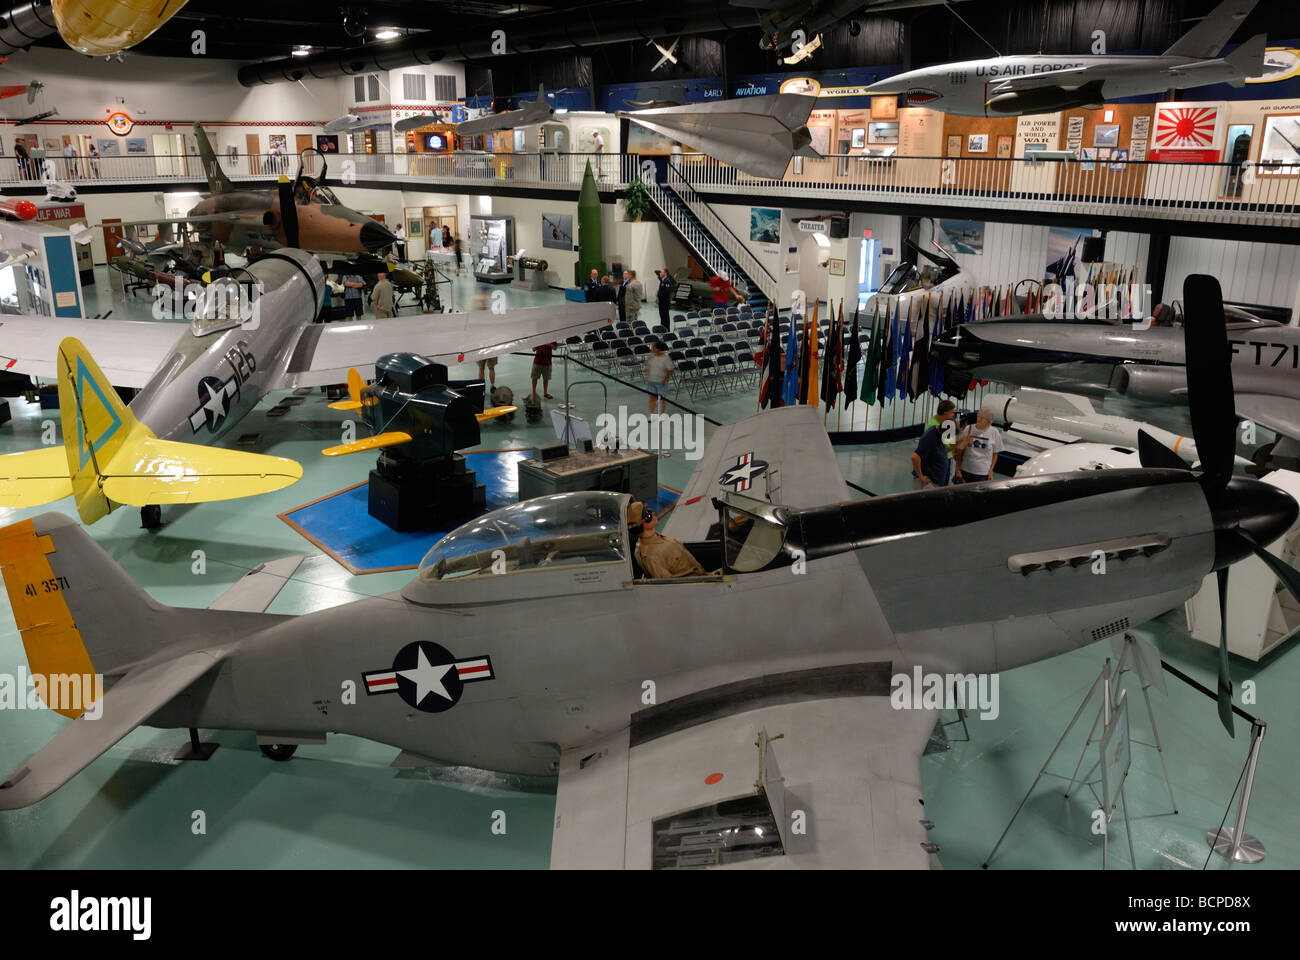 Interior of the Aircraft Armament Museum at Eglin Airforce Base Florida - Stock Image